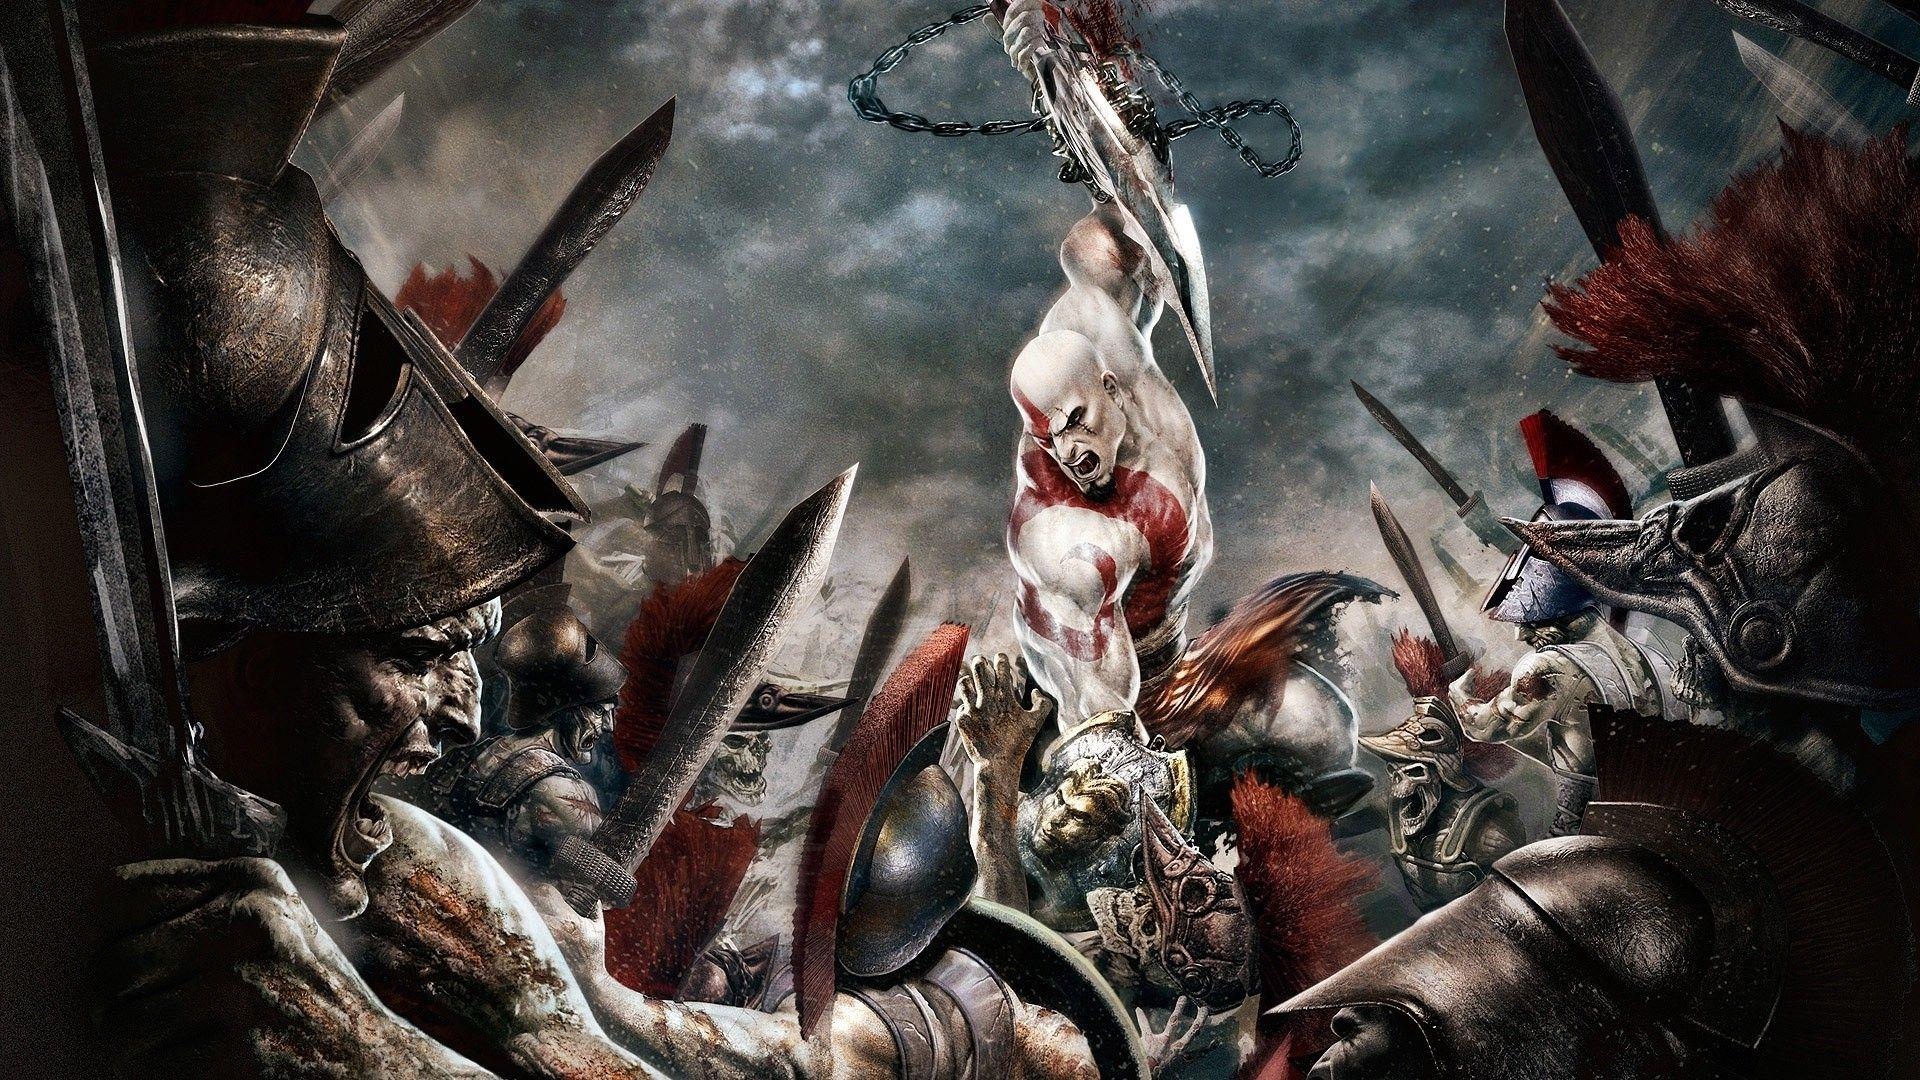 God Of War Wallpapers HD Monster - Wallpaper Cave